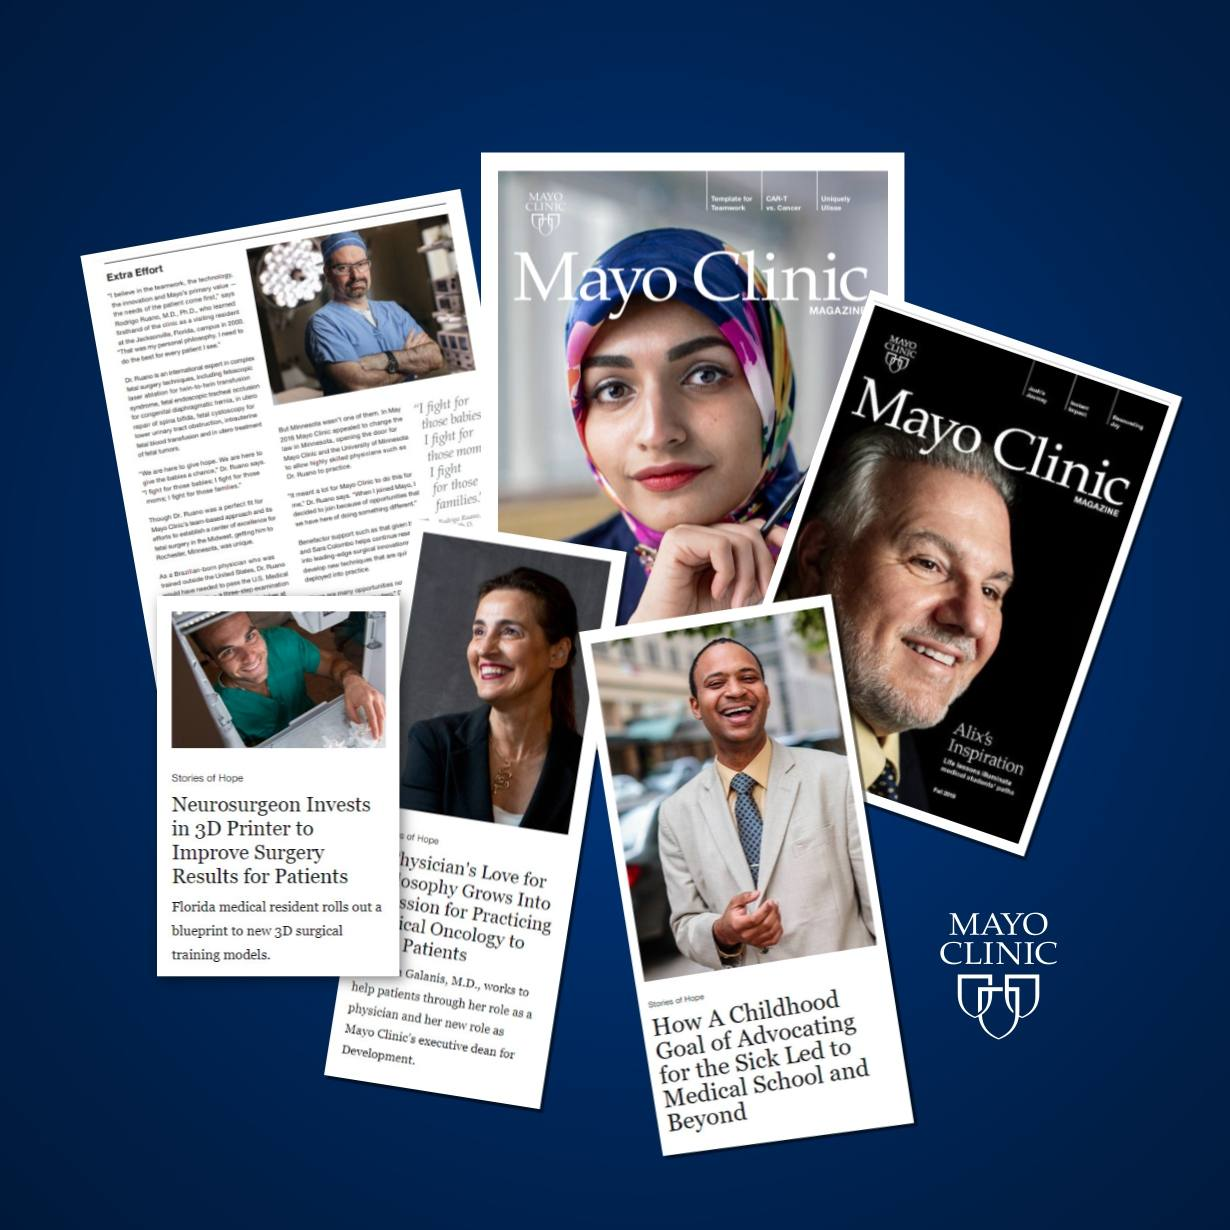 a collage of different Mayo Clinic Magazine covers and articles in a blue background display I